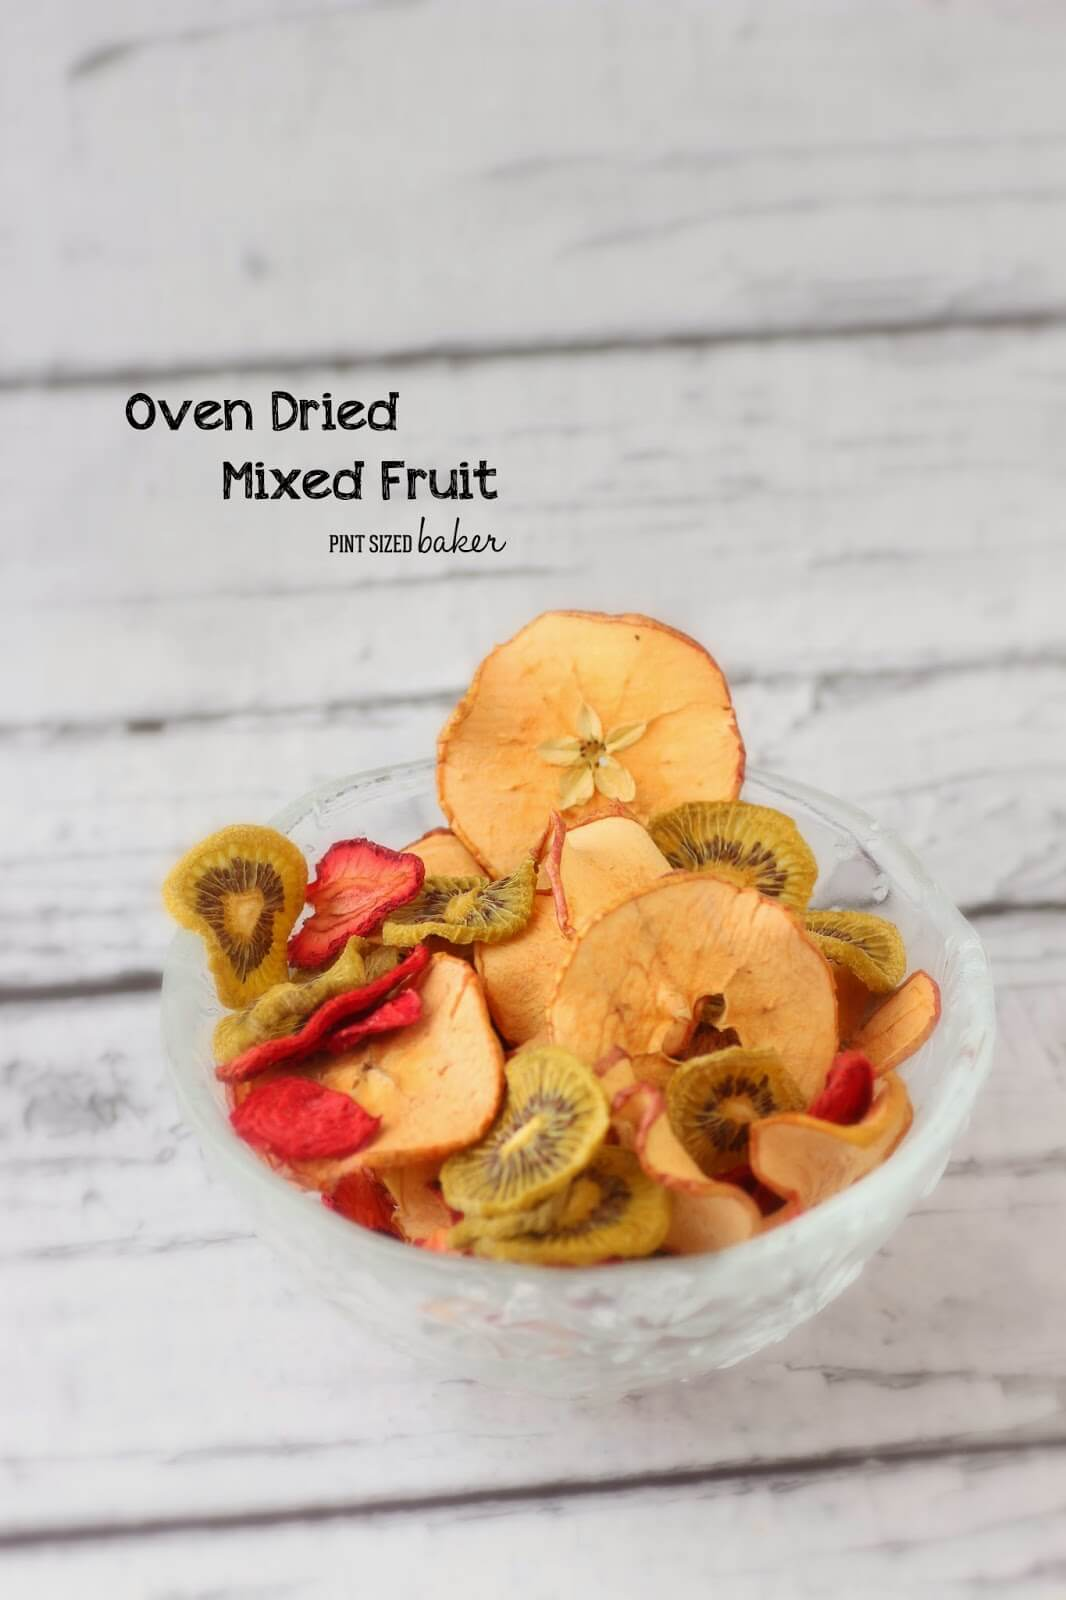 Oven Dried Mixed Fruit Pint Sized Baker